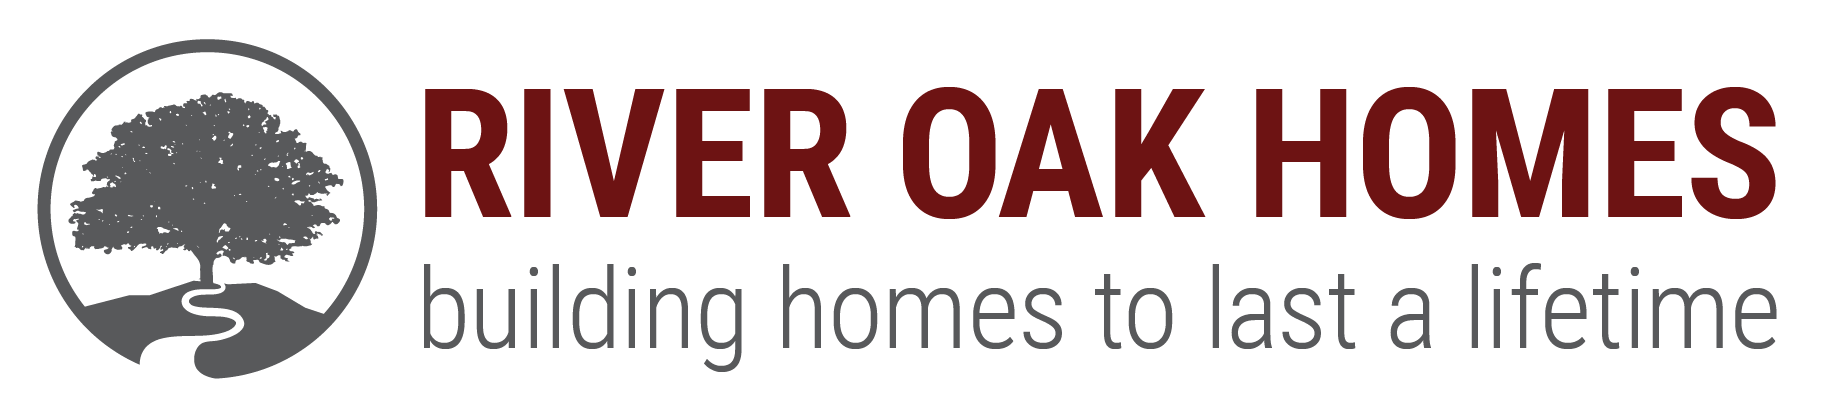 River Oak Homes